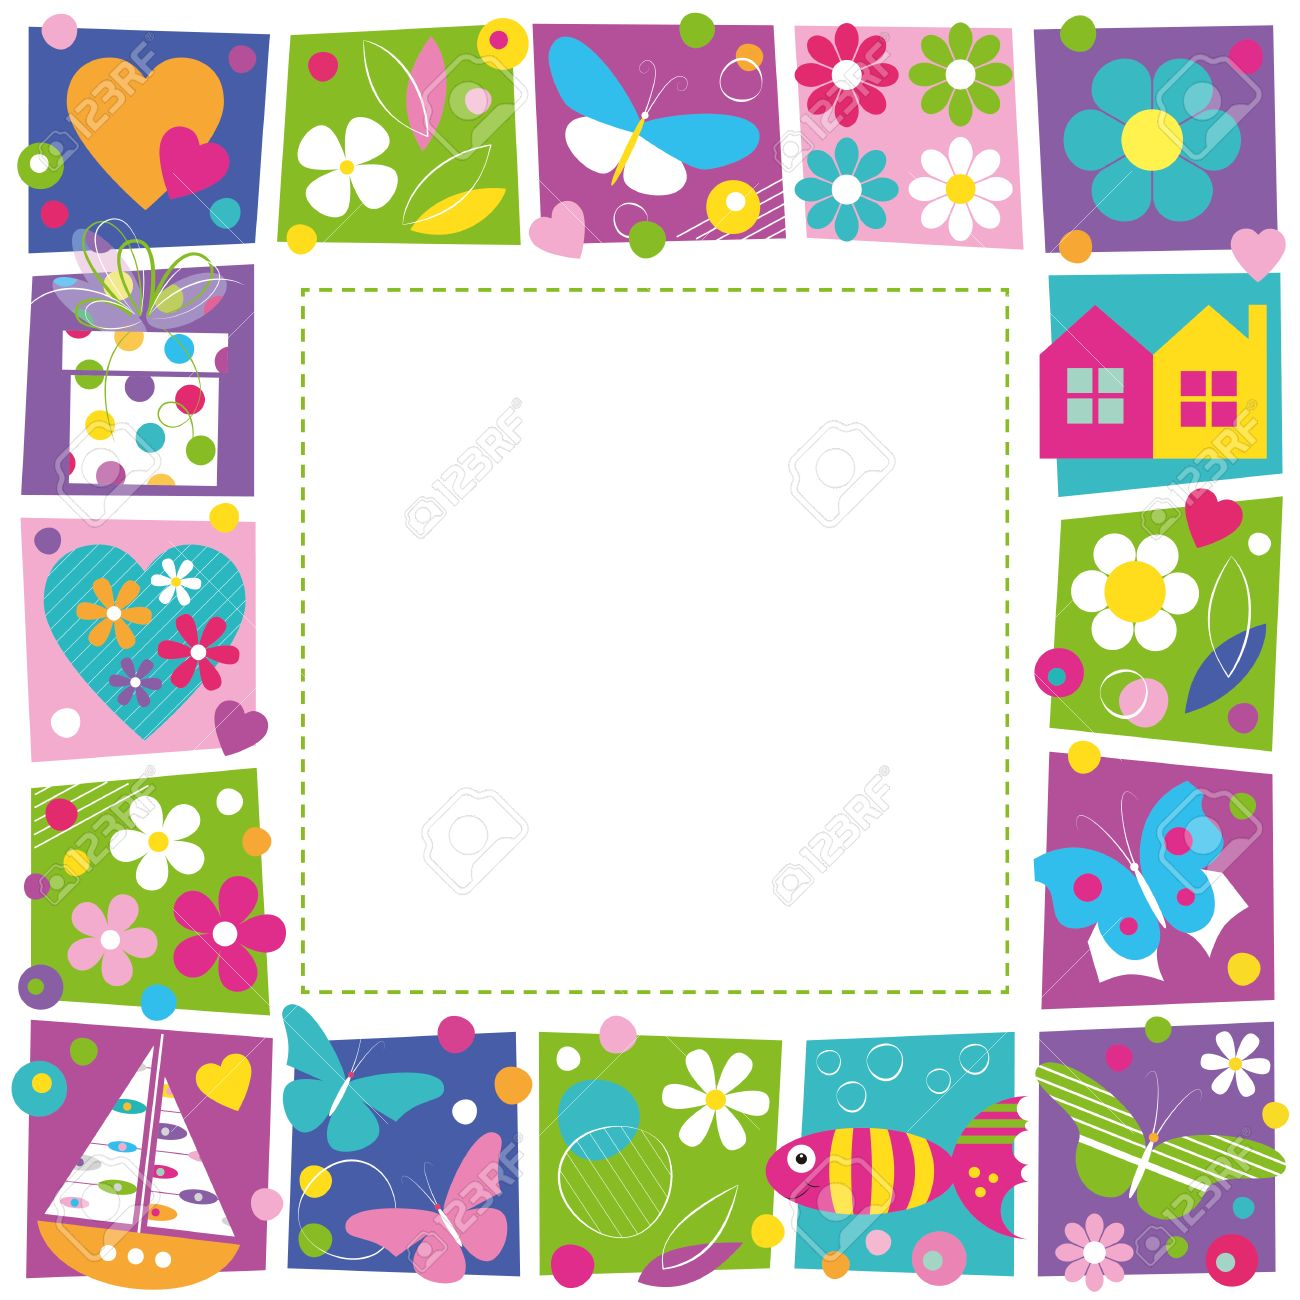 cute hearts flowers and butterflies border royalty free cliparts